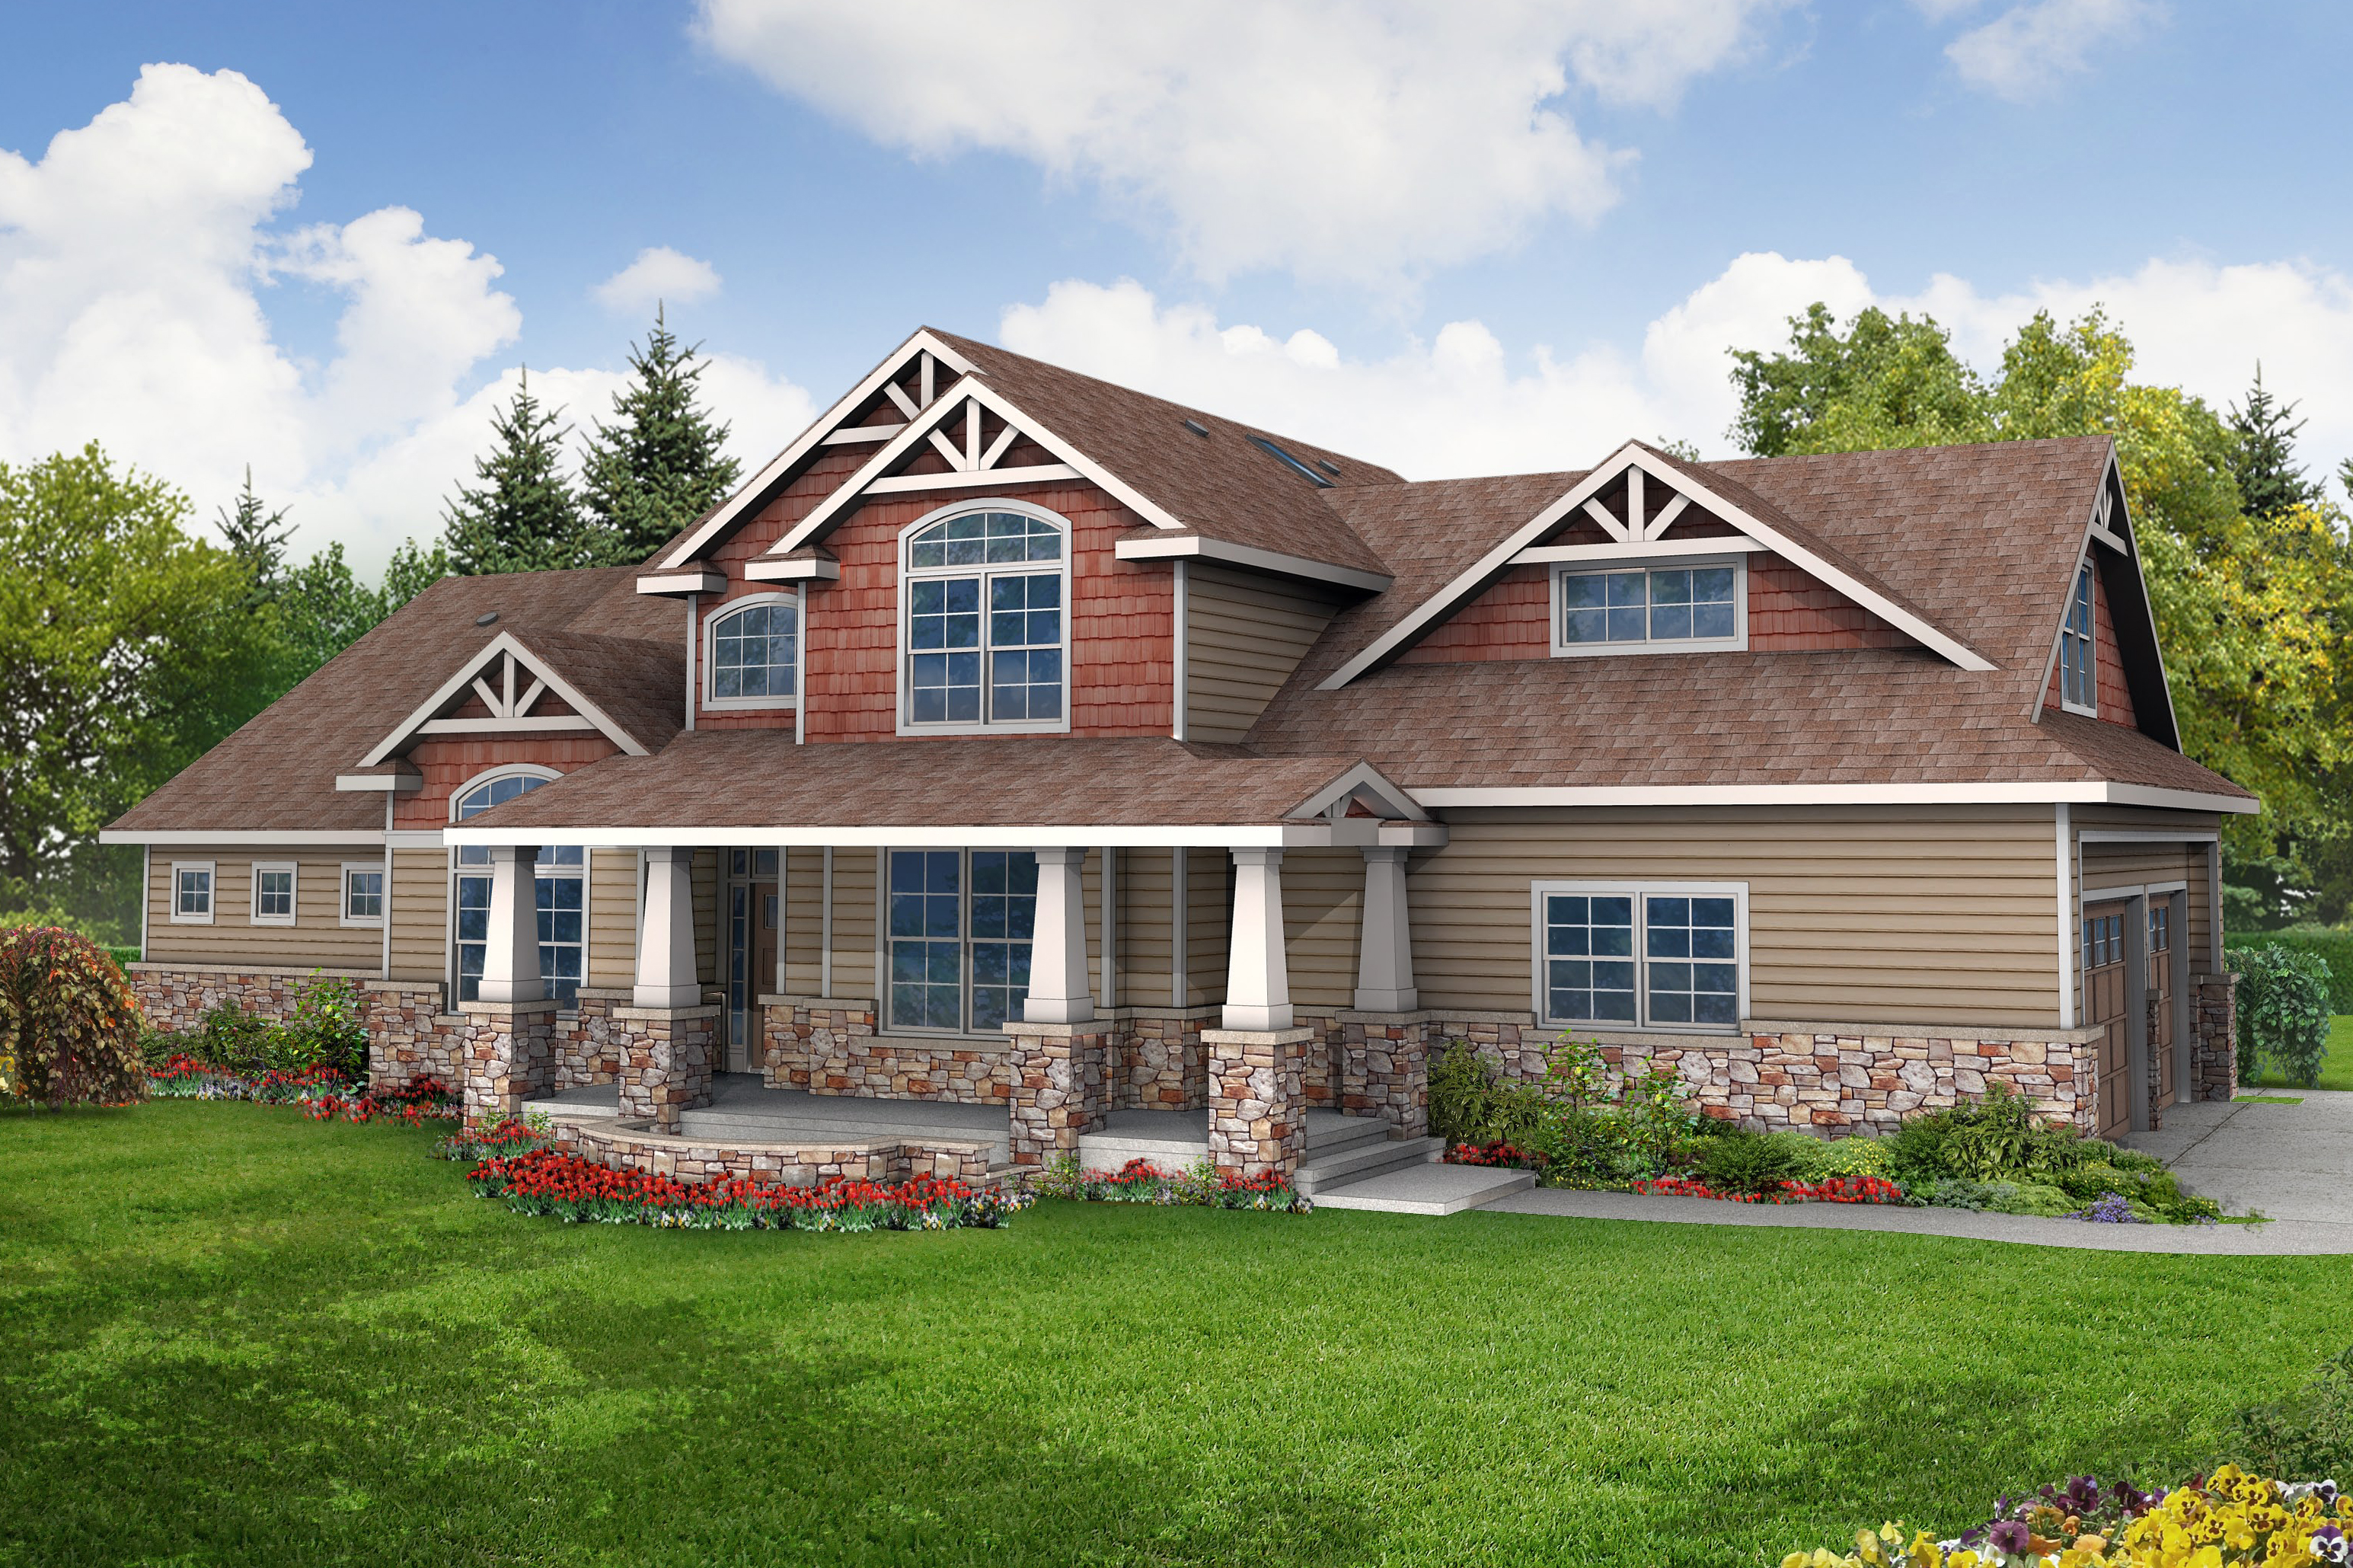 Craftsman house plans craftsman home plans craftsman for Home style photo